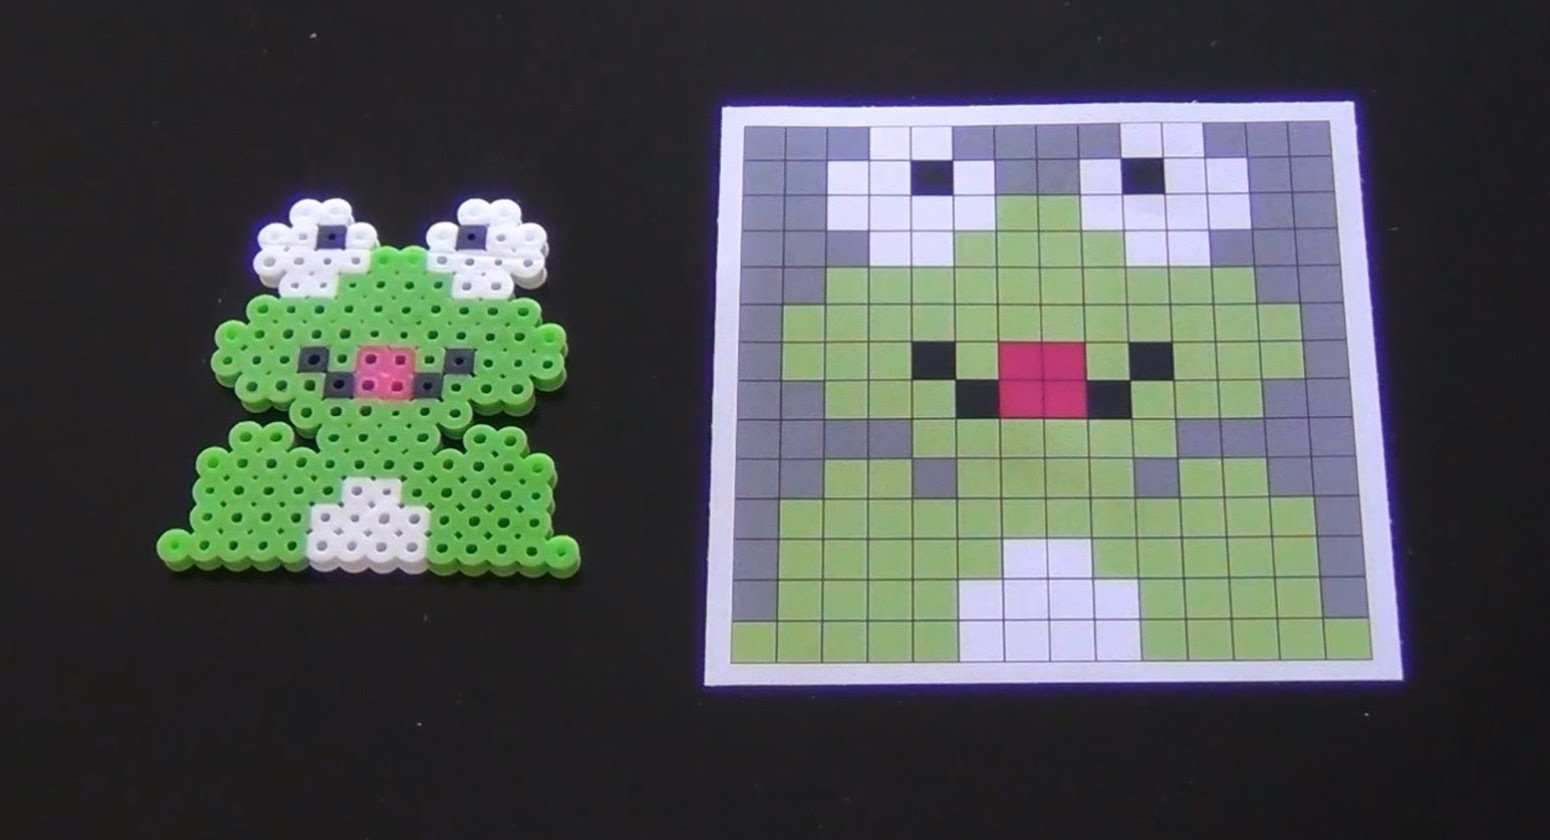 How to Make a Cute Perler Bead Girl Frog - Part 1